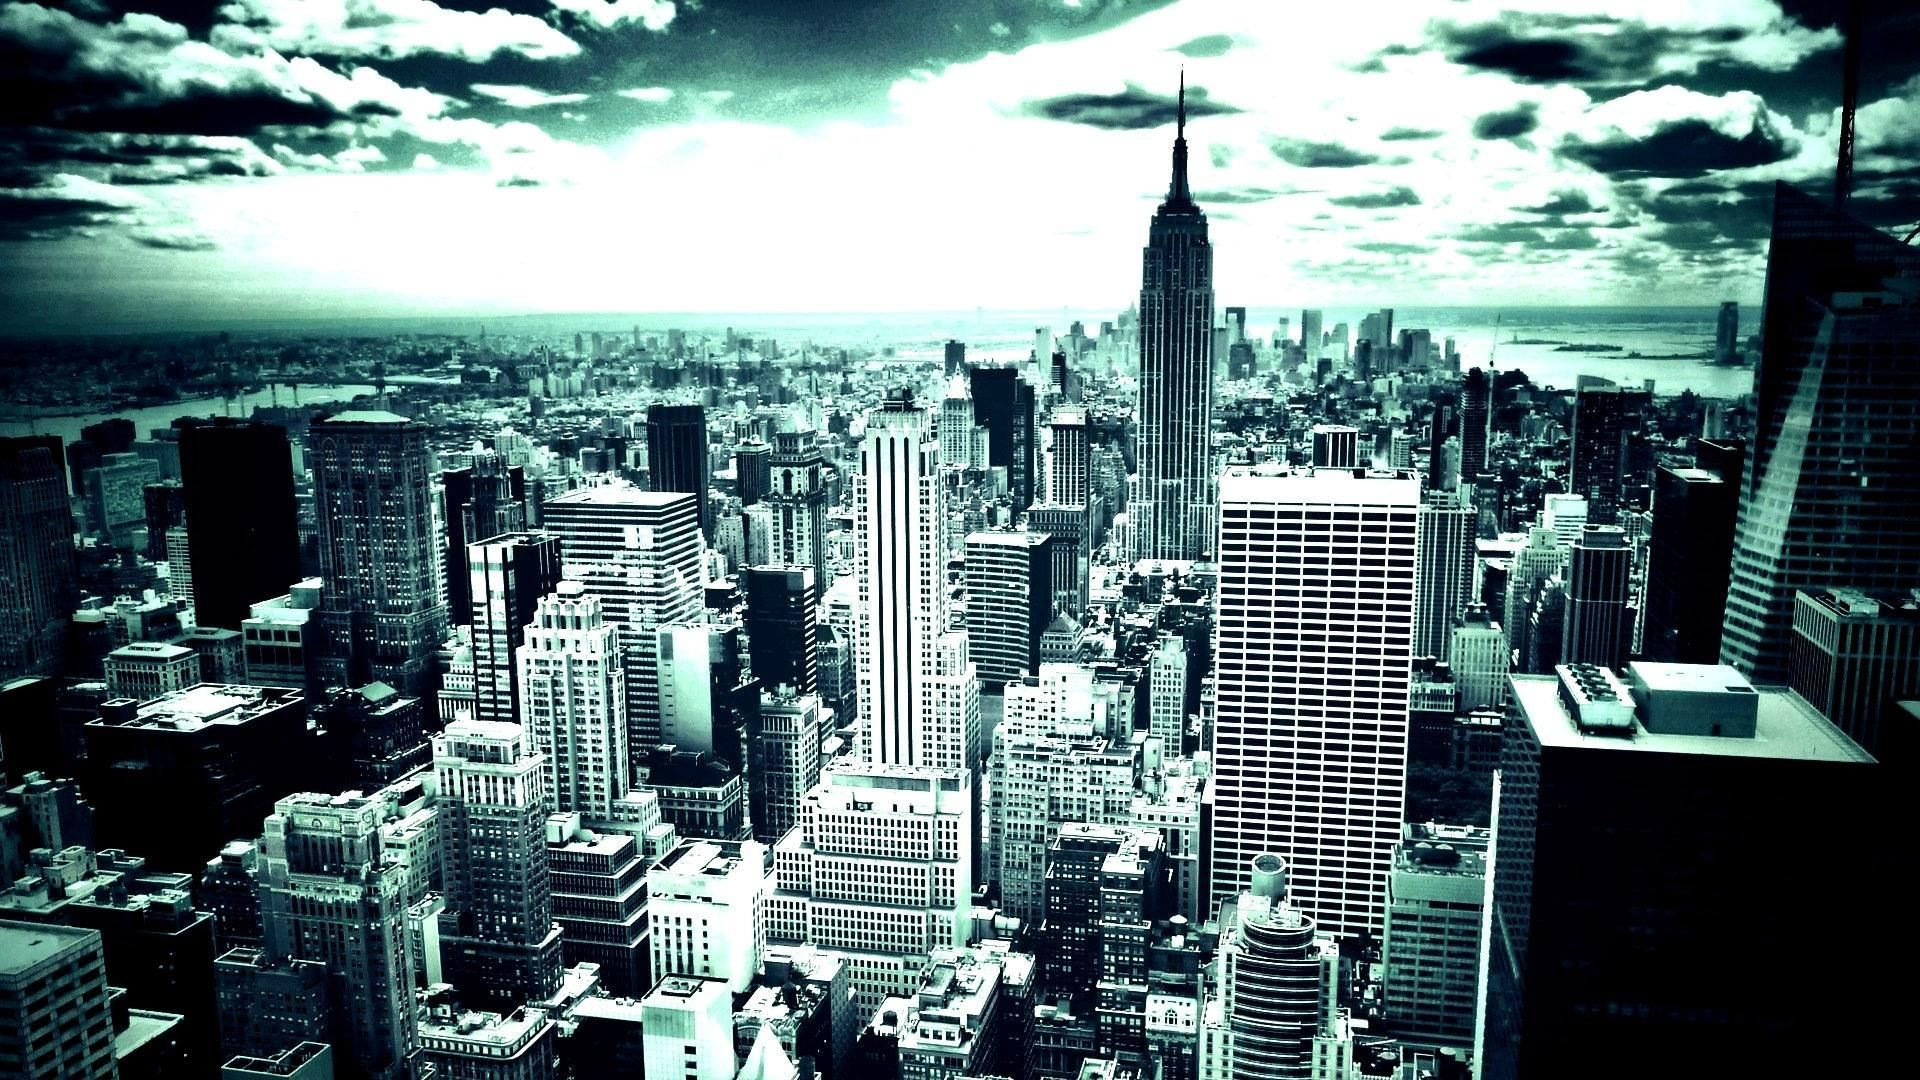 Cool wallpapers new york city hd wallpaper 3 3 3 the city 3 cool wallpapers new york city hd wallpaper 3 3 3 the city voltagebd Images